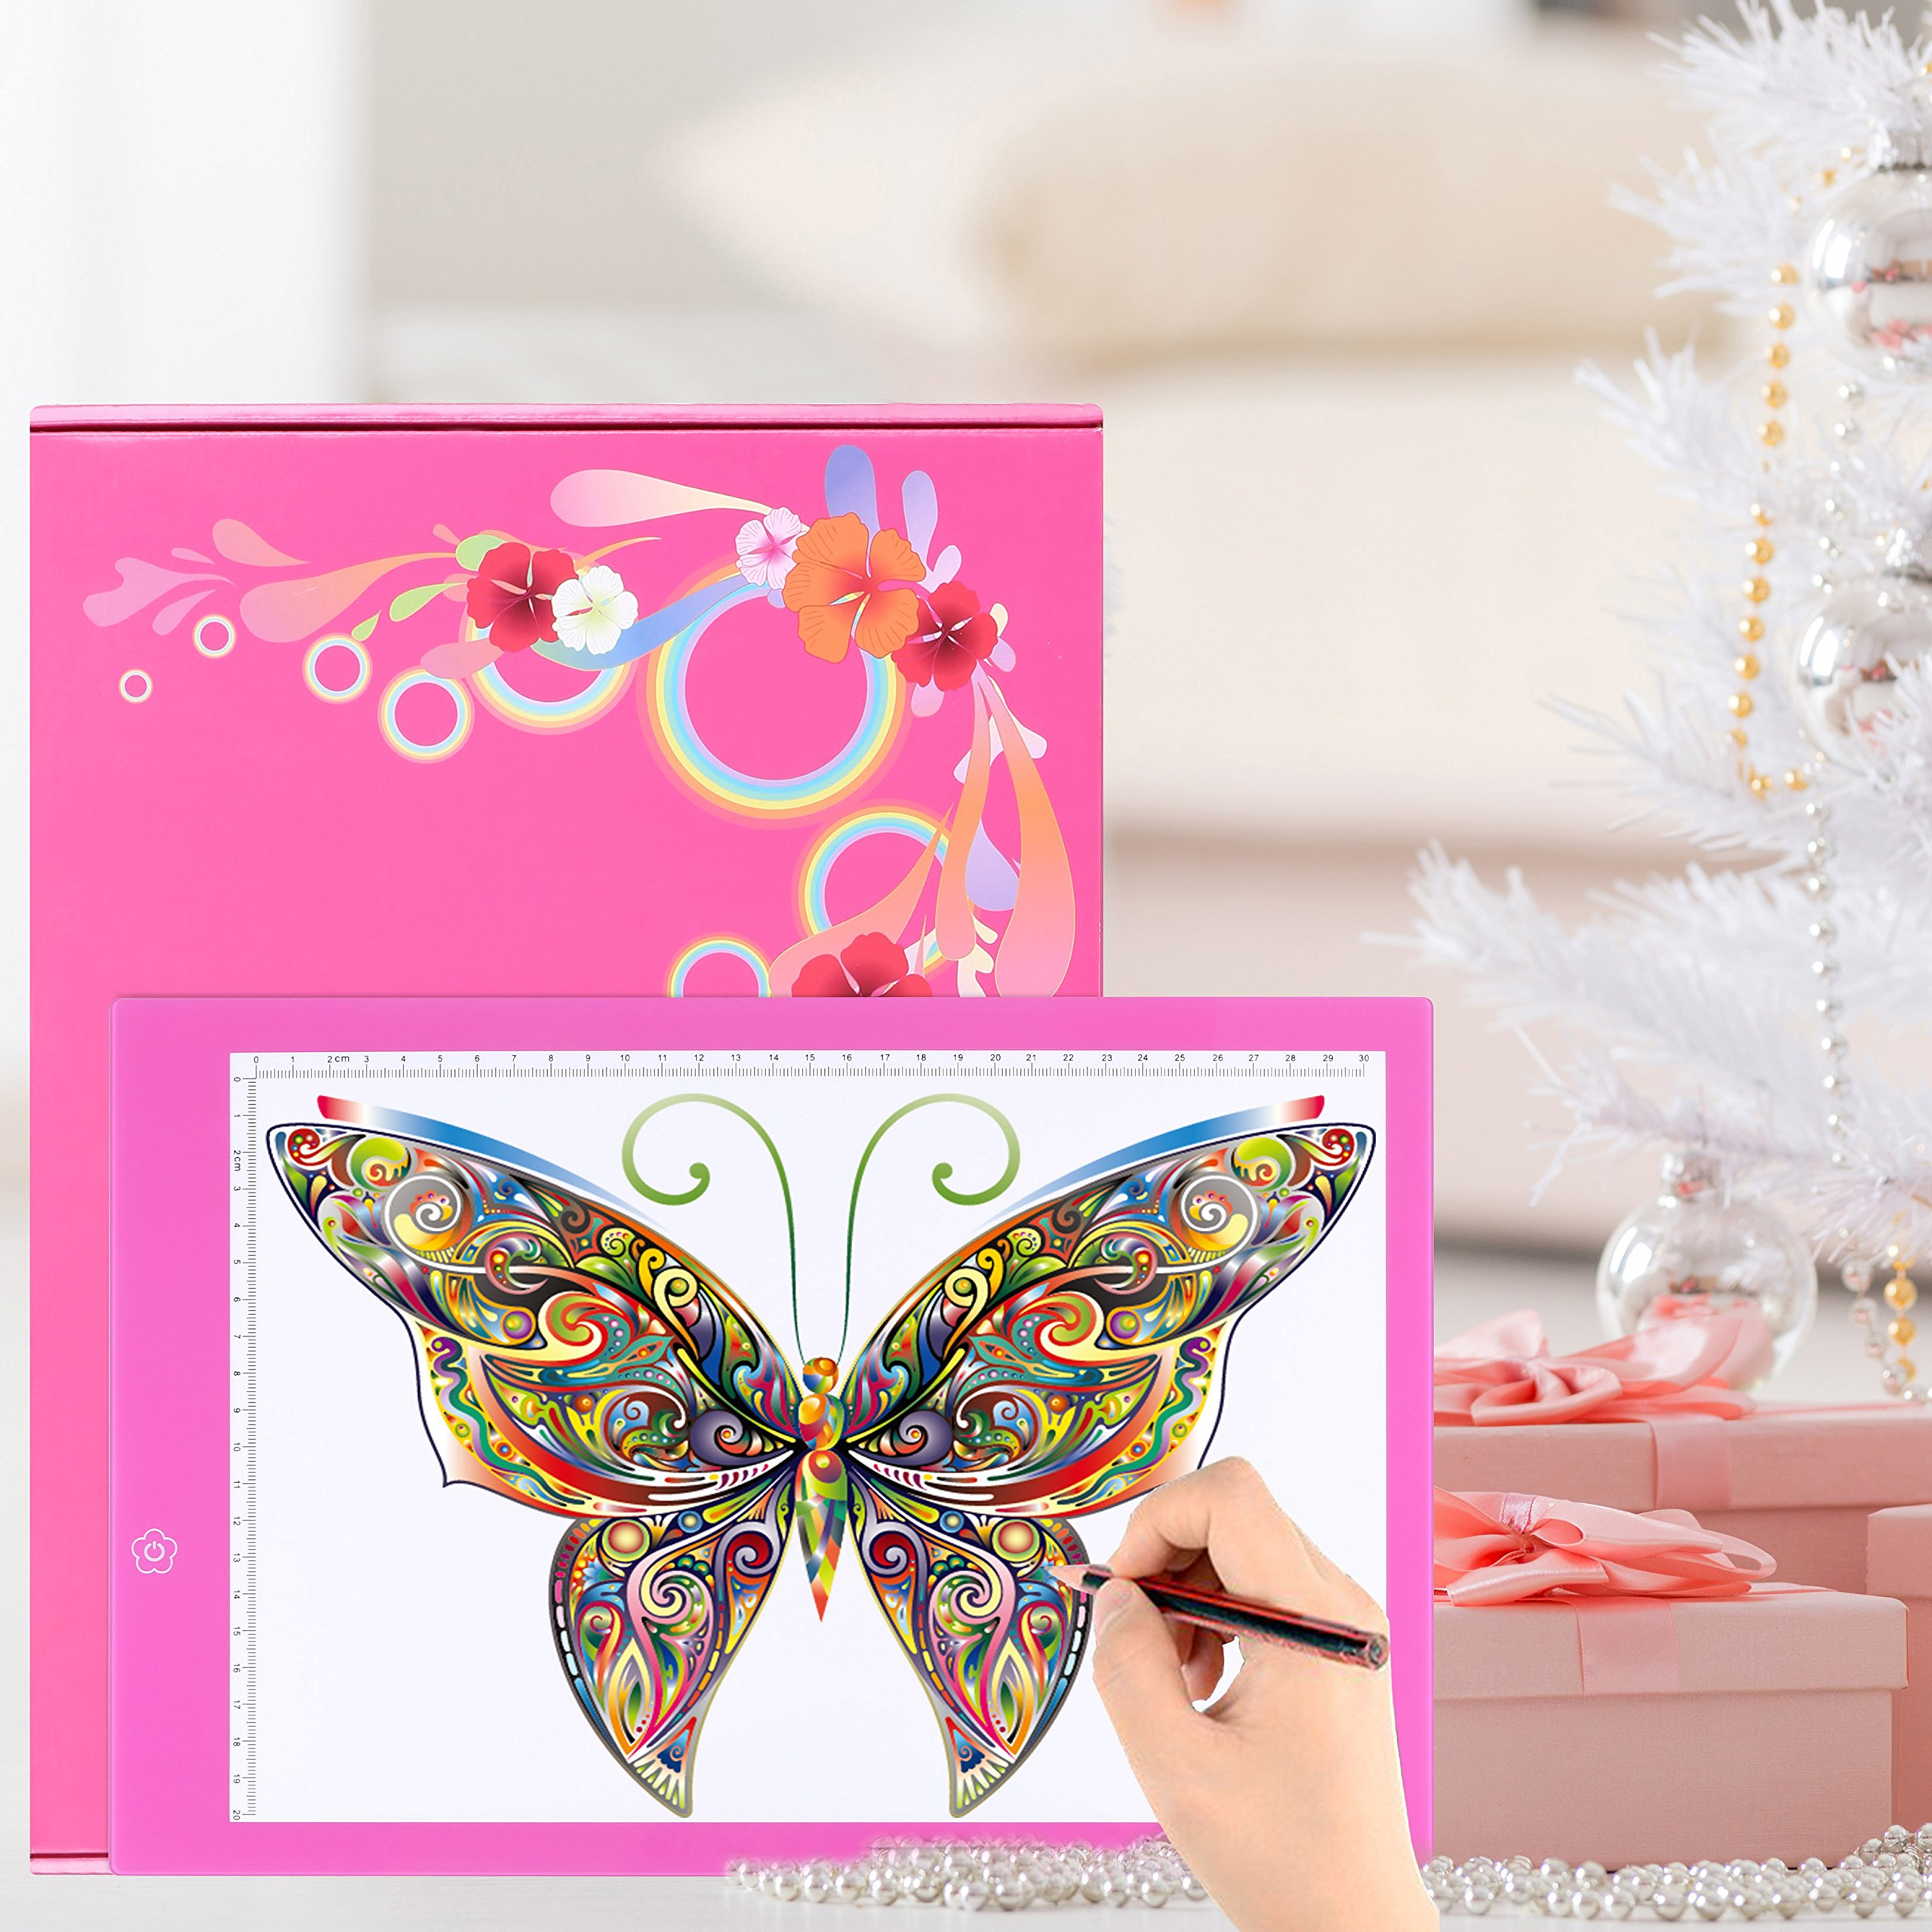 Dark Pink A4 Ultra-thin Portable LED Light Box Tracer USB Power Cable Dimmable Brightness Artcraft Tracing Light Pad Light Box Art Supplies Arts and Crafts for Girls Boys Kids Gift Set Tracing